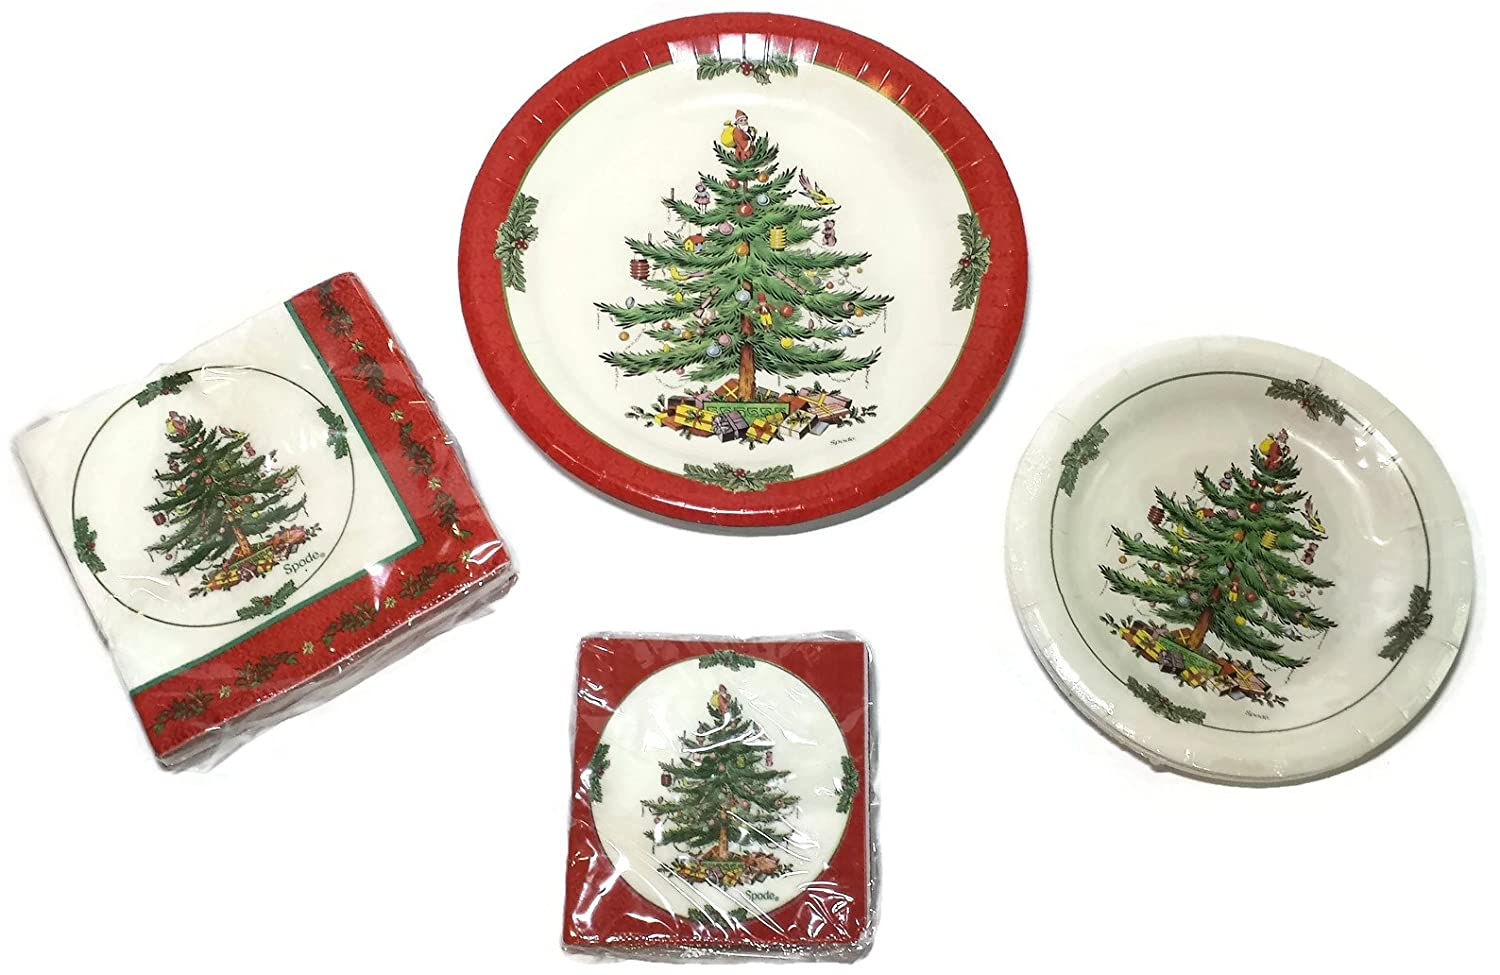 Christmas Tree Paper Plates And Napkin Sets  sc 1 st  Castrophotos & Christmas Paper Plates Napkins - Castrophotos